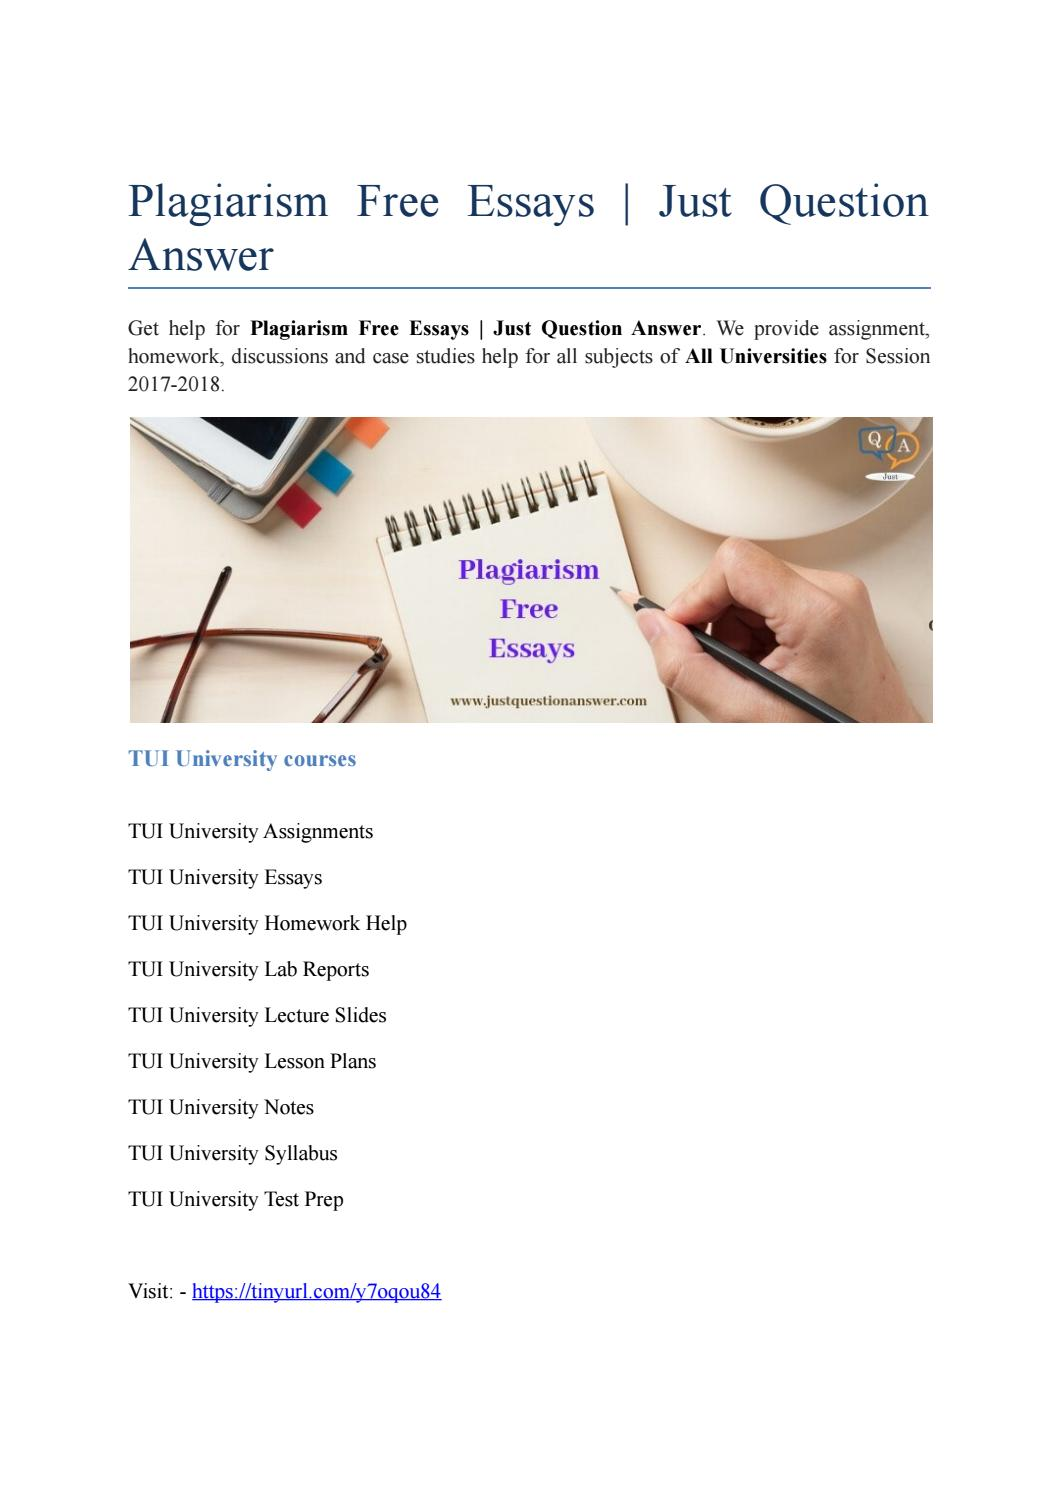 009 Essay Example Page 1 Plagiarism Free Impressive Essays 100 Check Full